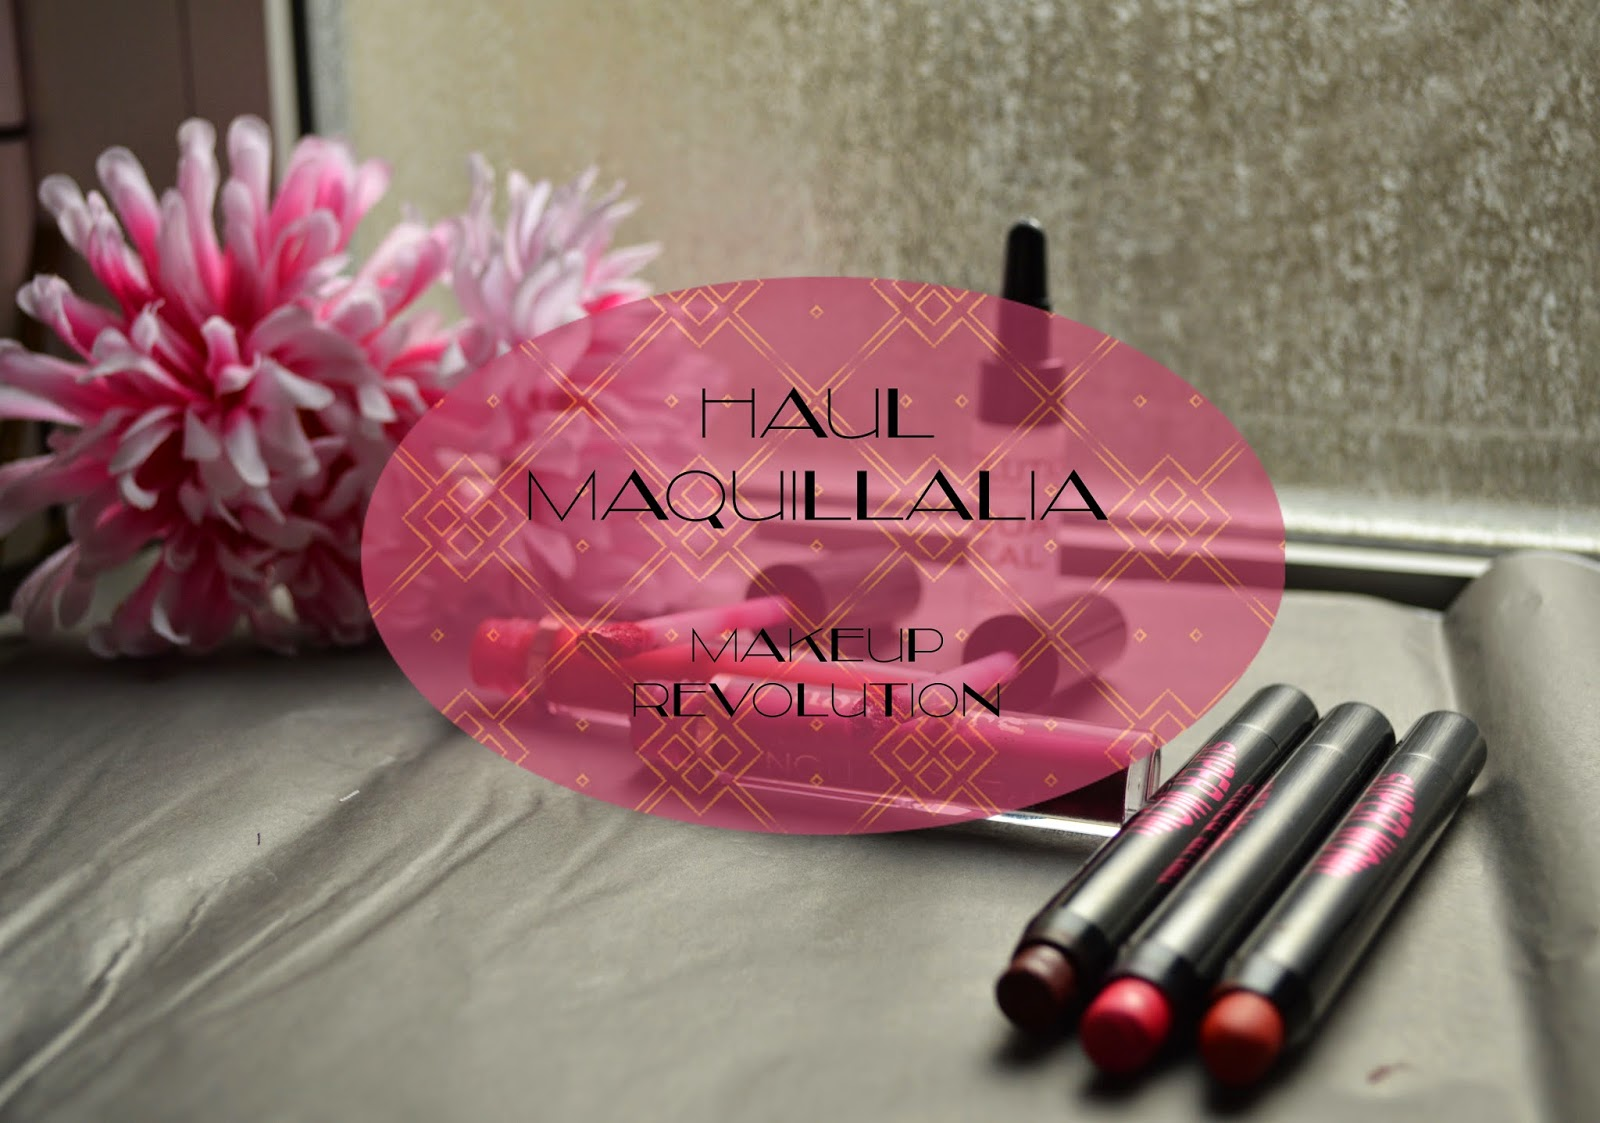 Haul Maquillalia with Makeup Revolution Products